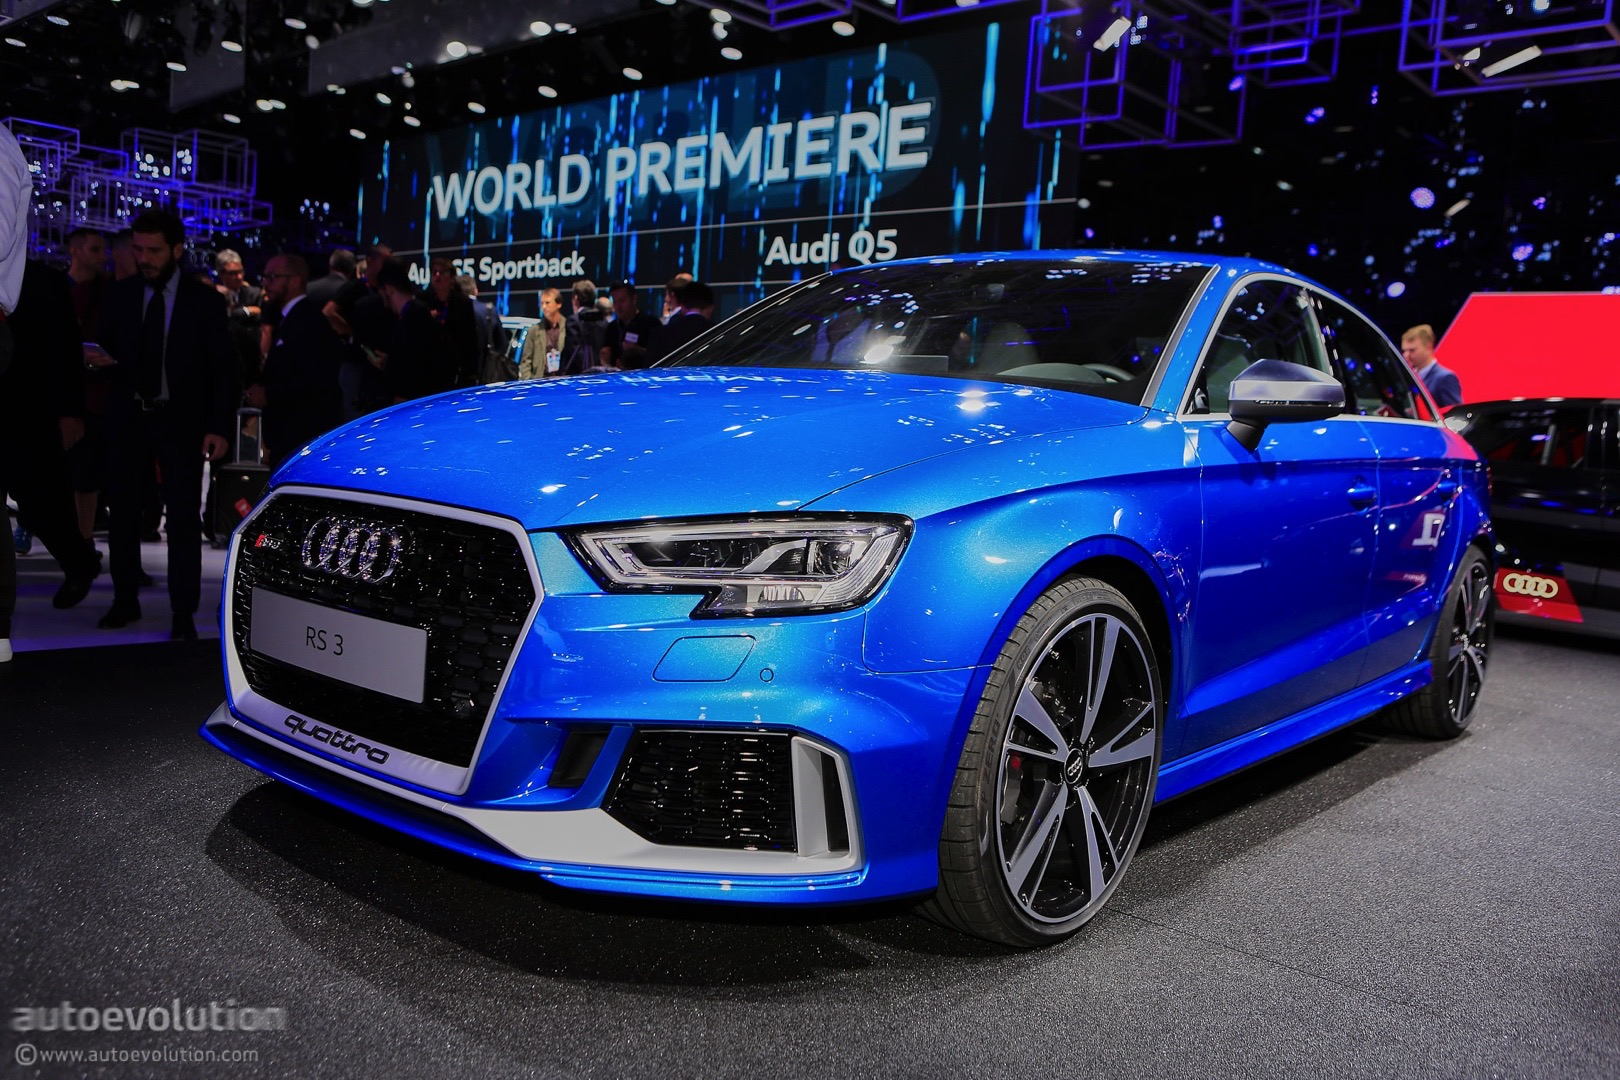 2018 Audi RS3 Sedan Price Leaked In Canada, Should Be Around $54,000 In The  US